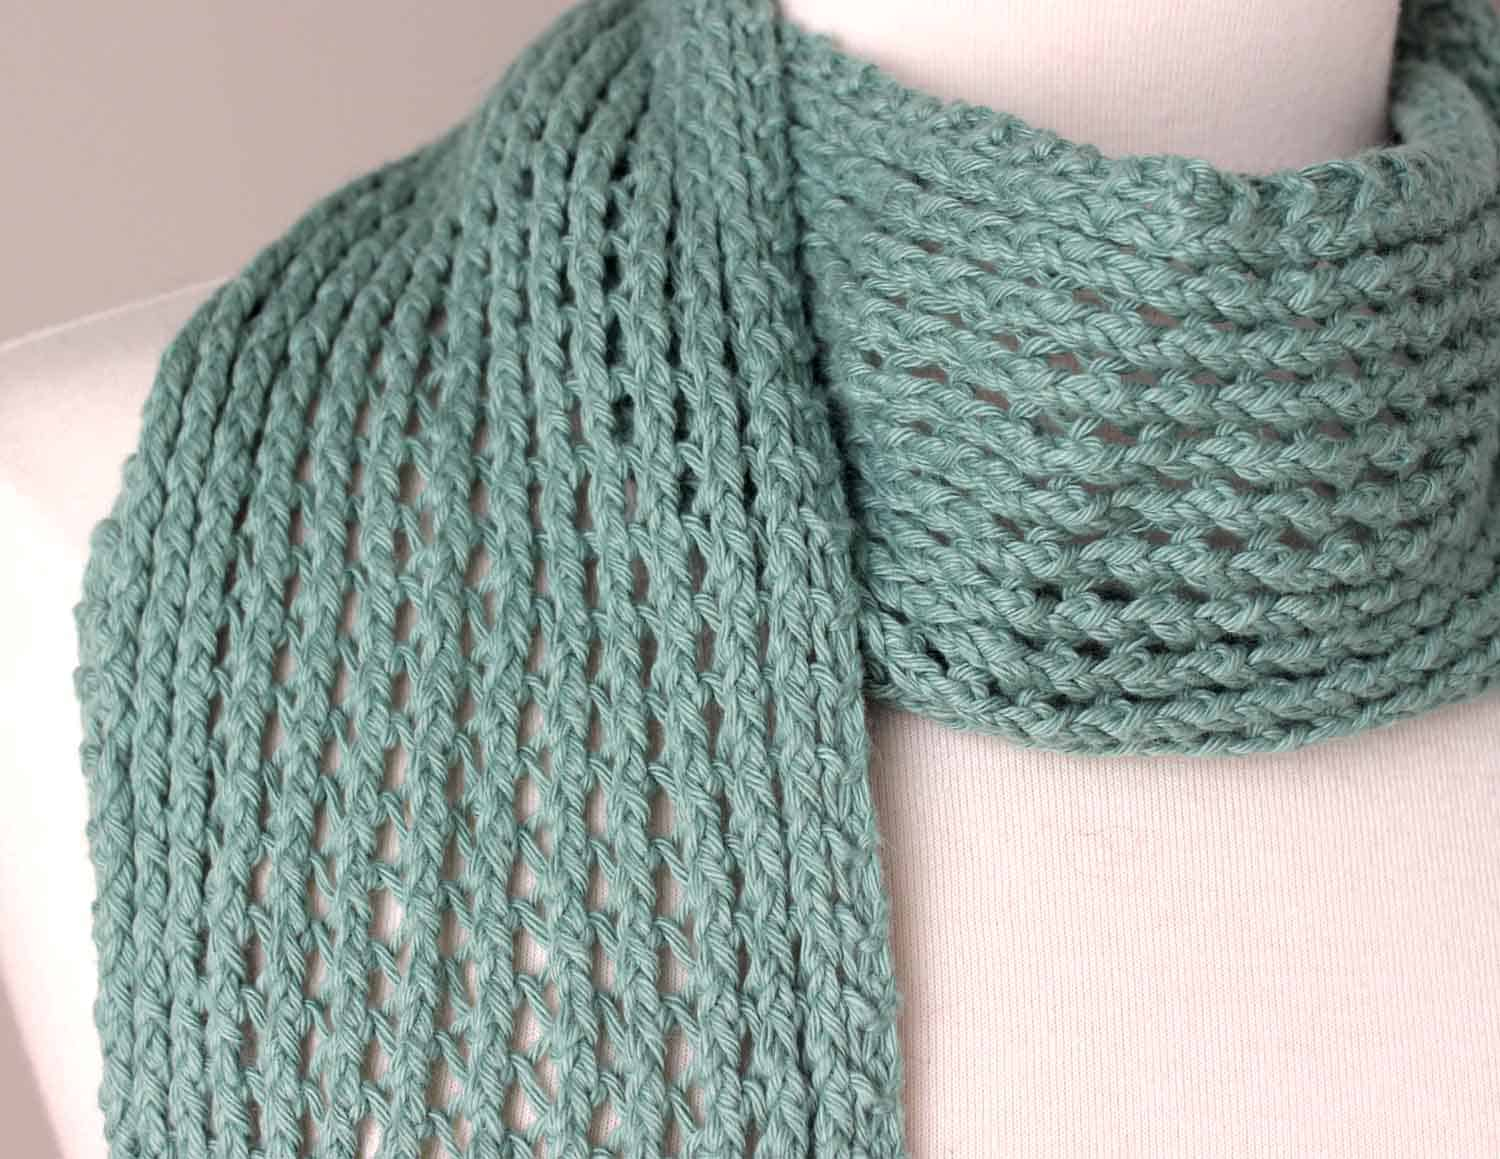 Knitting Patterns For Summer Shawls : Knitting Resources - Deux Brins de Maille